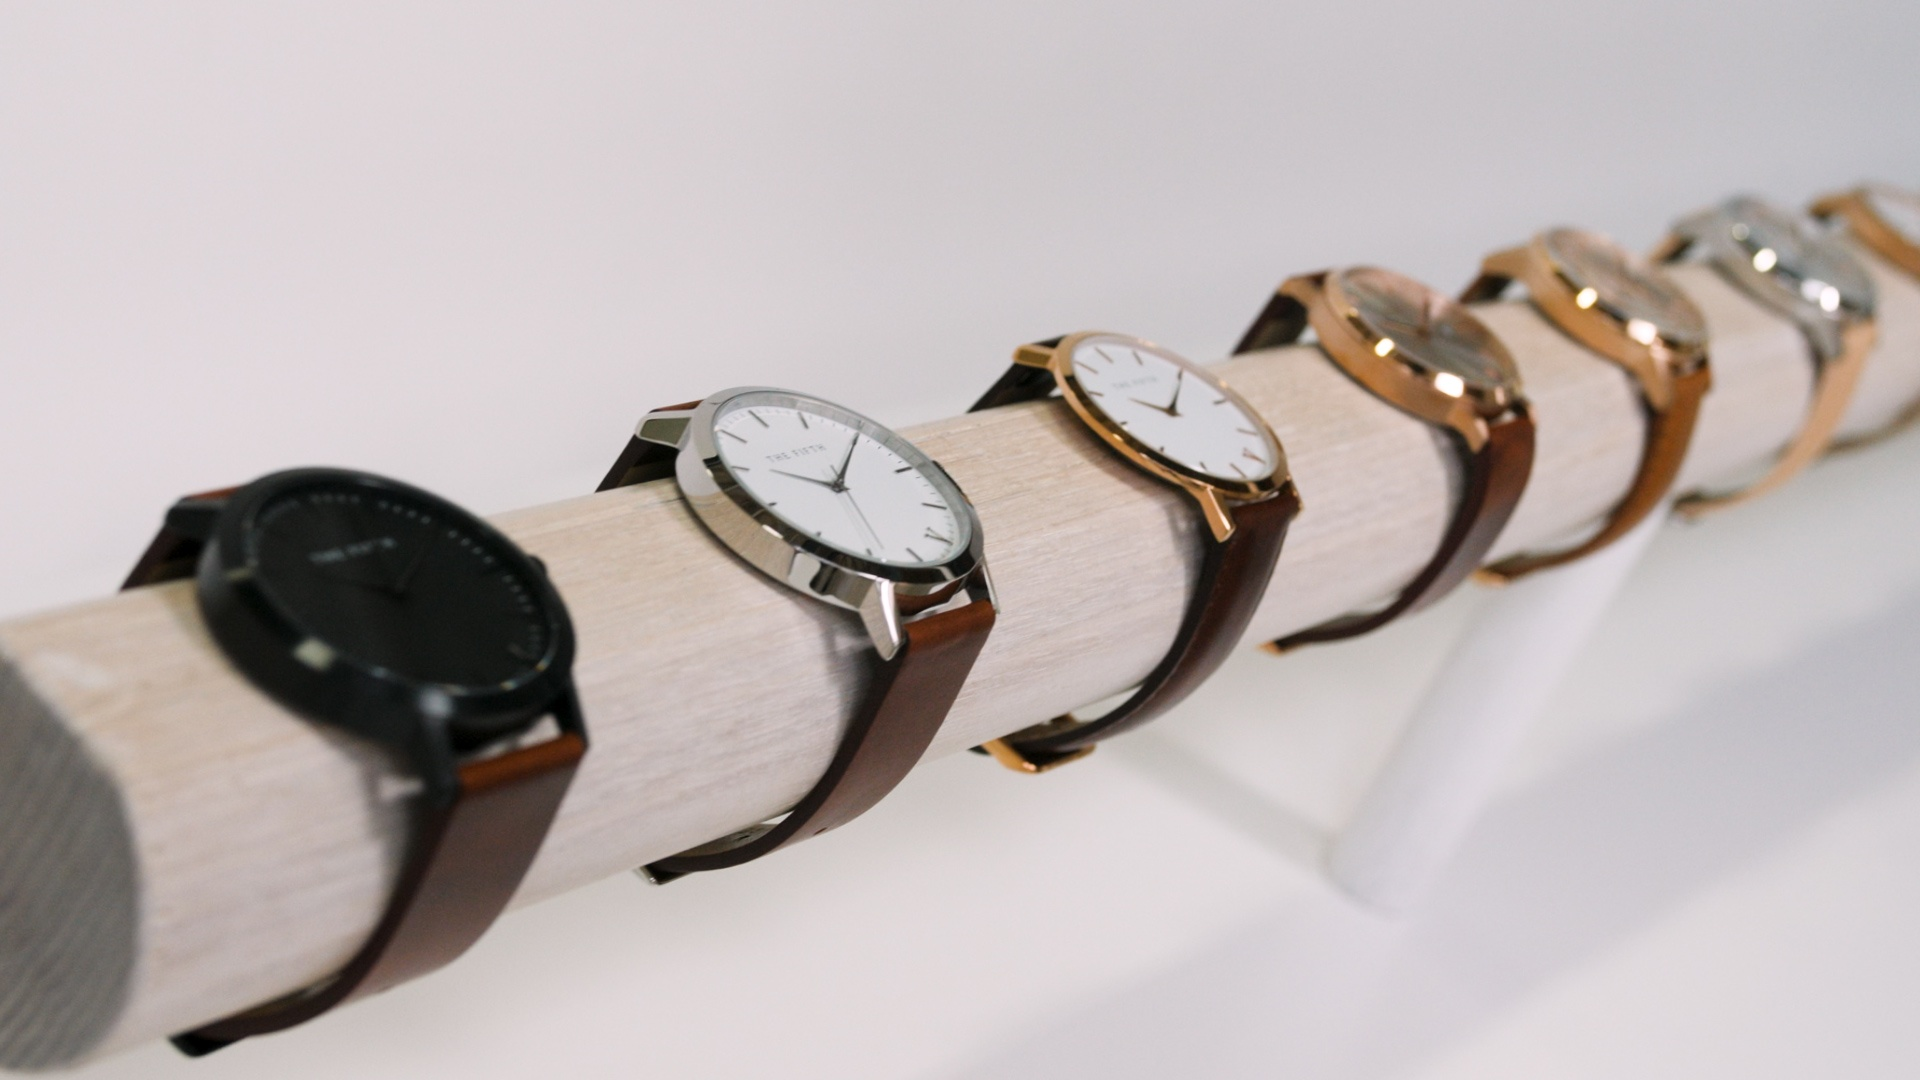 Case_Study_The5th_watches